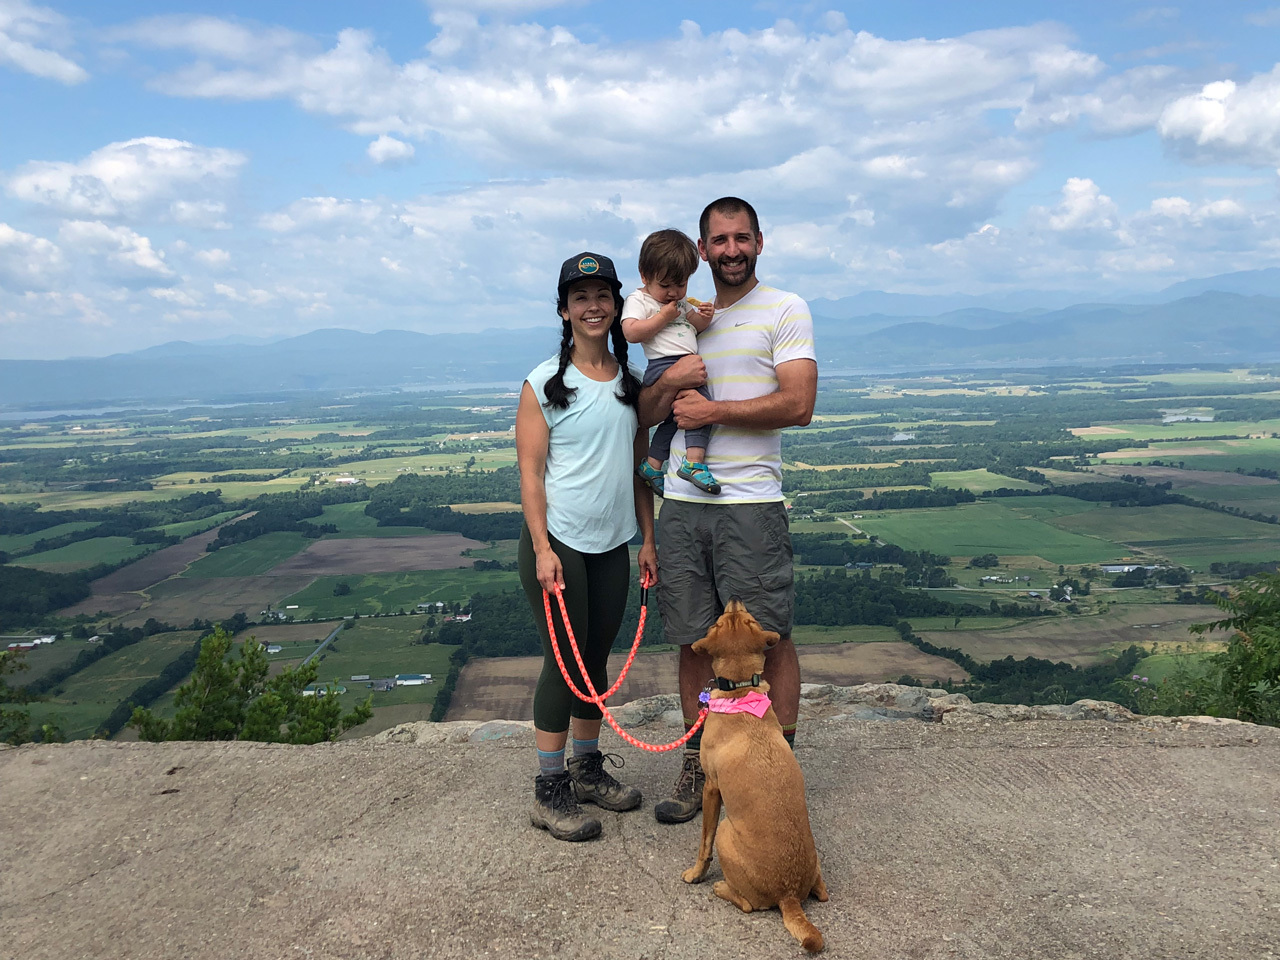 mom, son, dad and dog hiking in vermont, standing on top of mountain with view of farms and lake